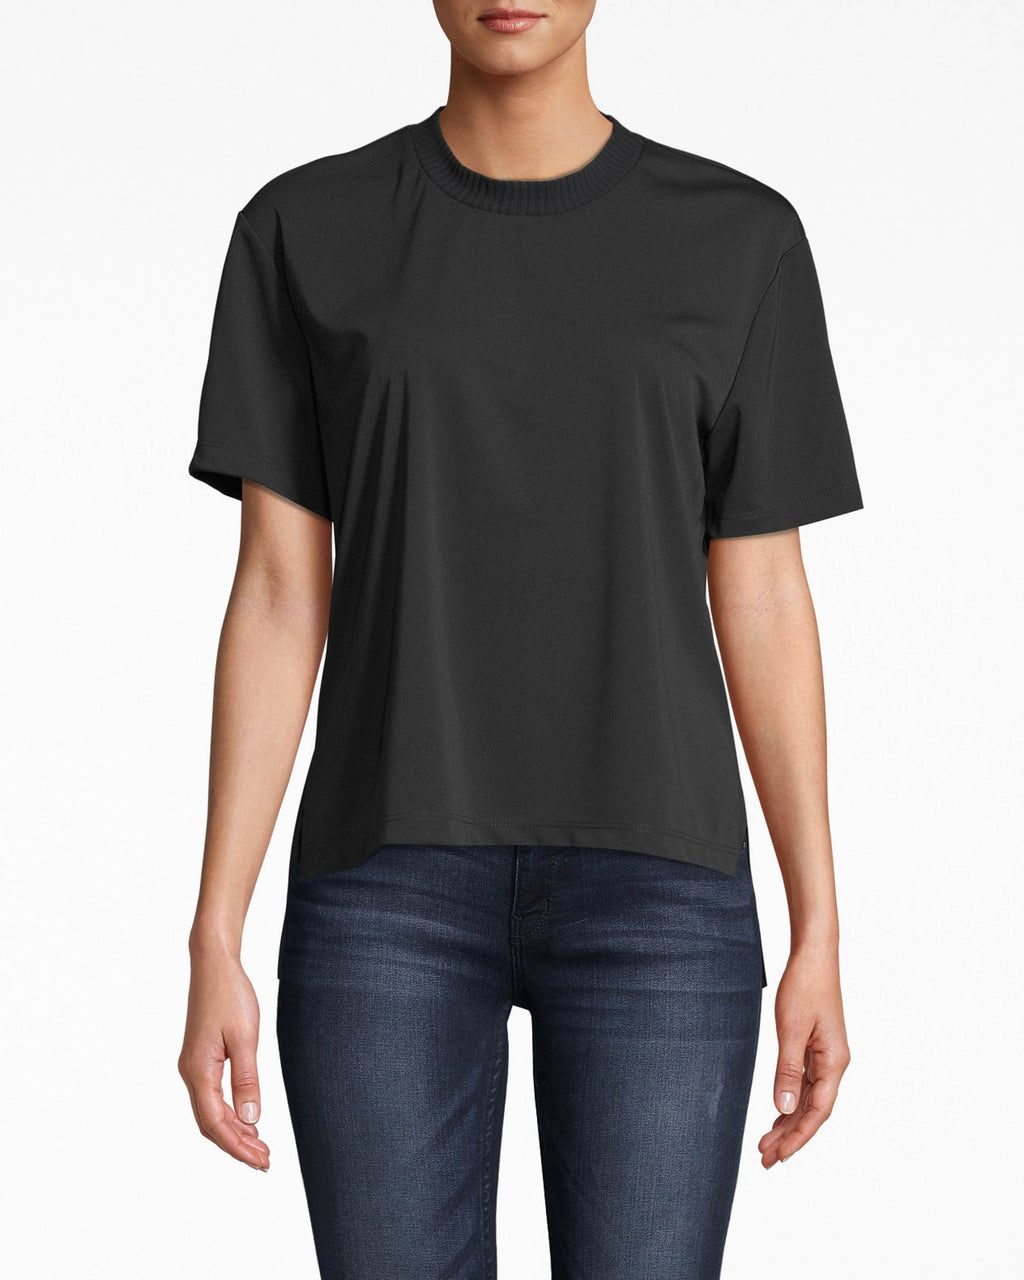 AQ10061 - STRETCHY MATTE JERSEY T-SHIRT - tops - shirts - this grab-and-go jersey t-shirt features simple short sleeves, a ribbed neckline, and comfortable fit.